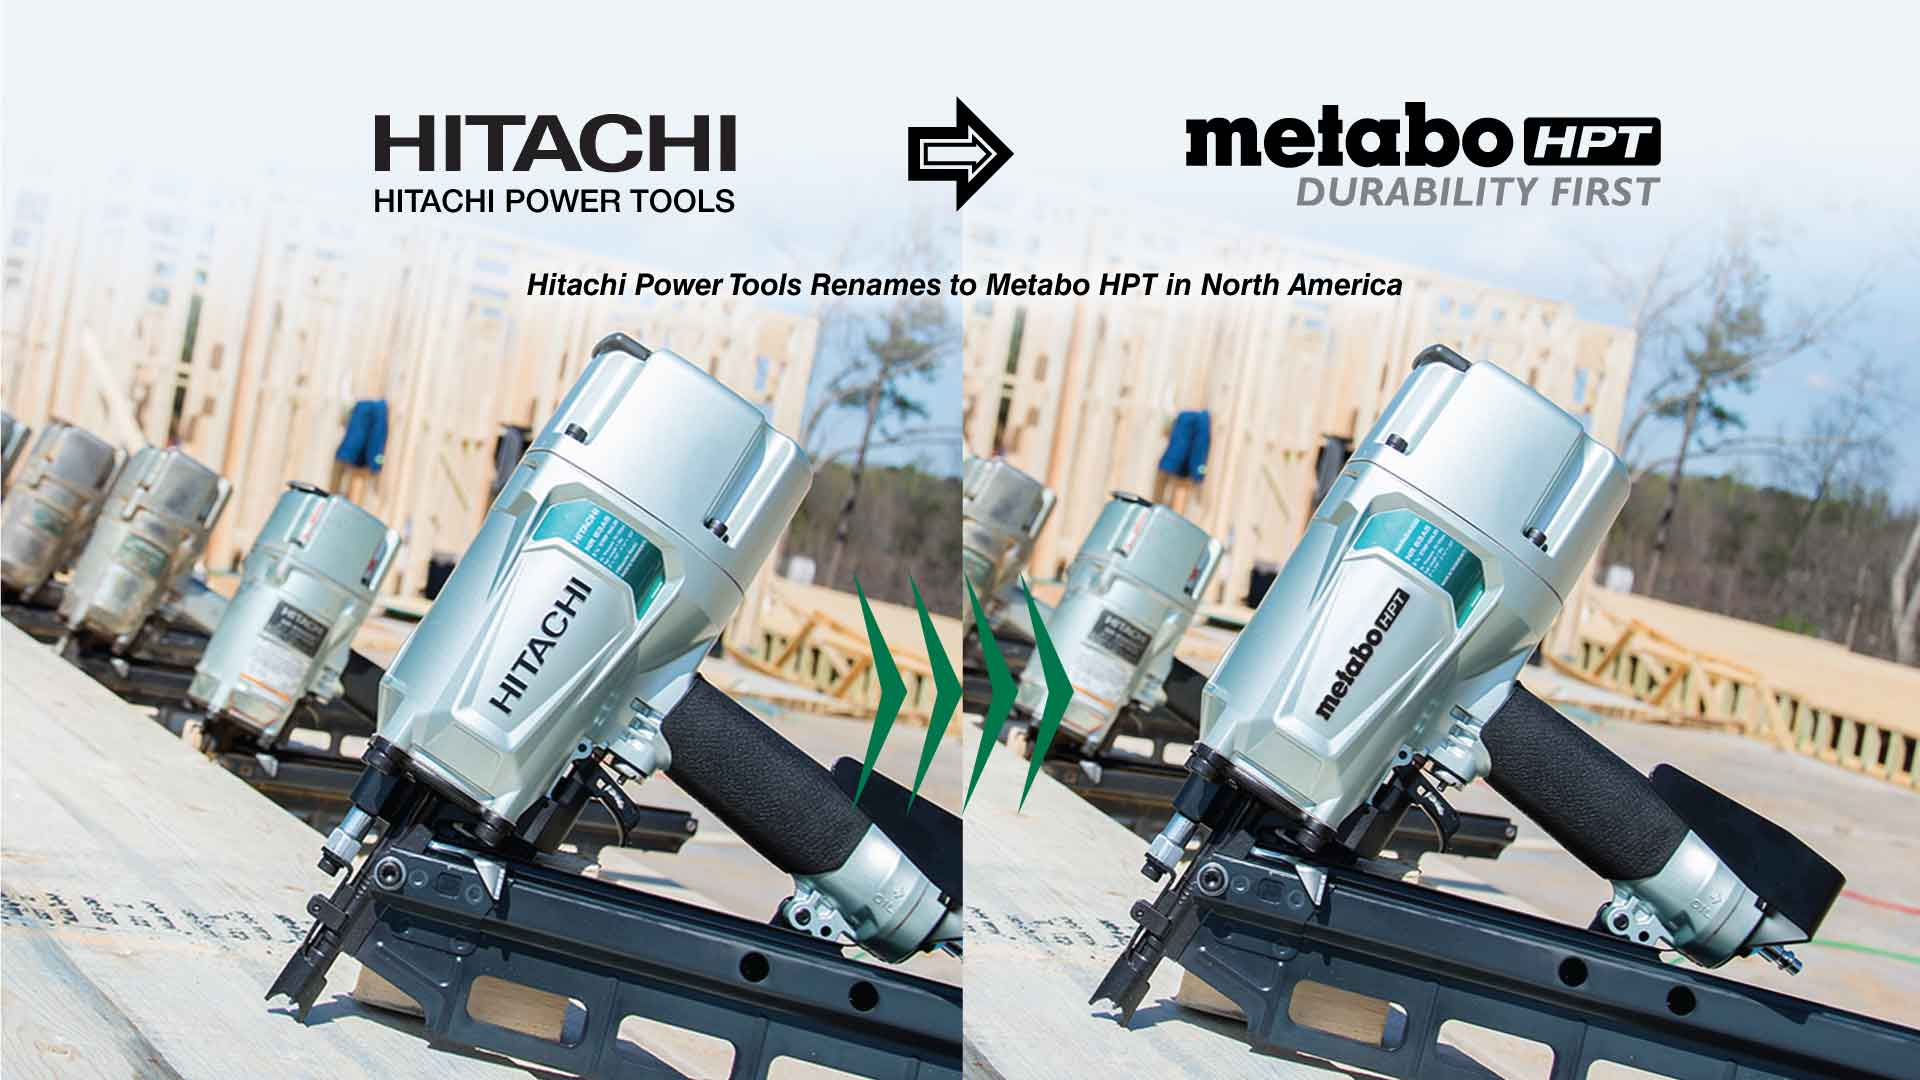 Hitachi Power Tools Renames to Metabo HPT in North America